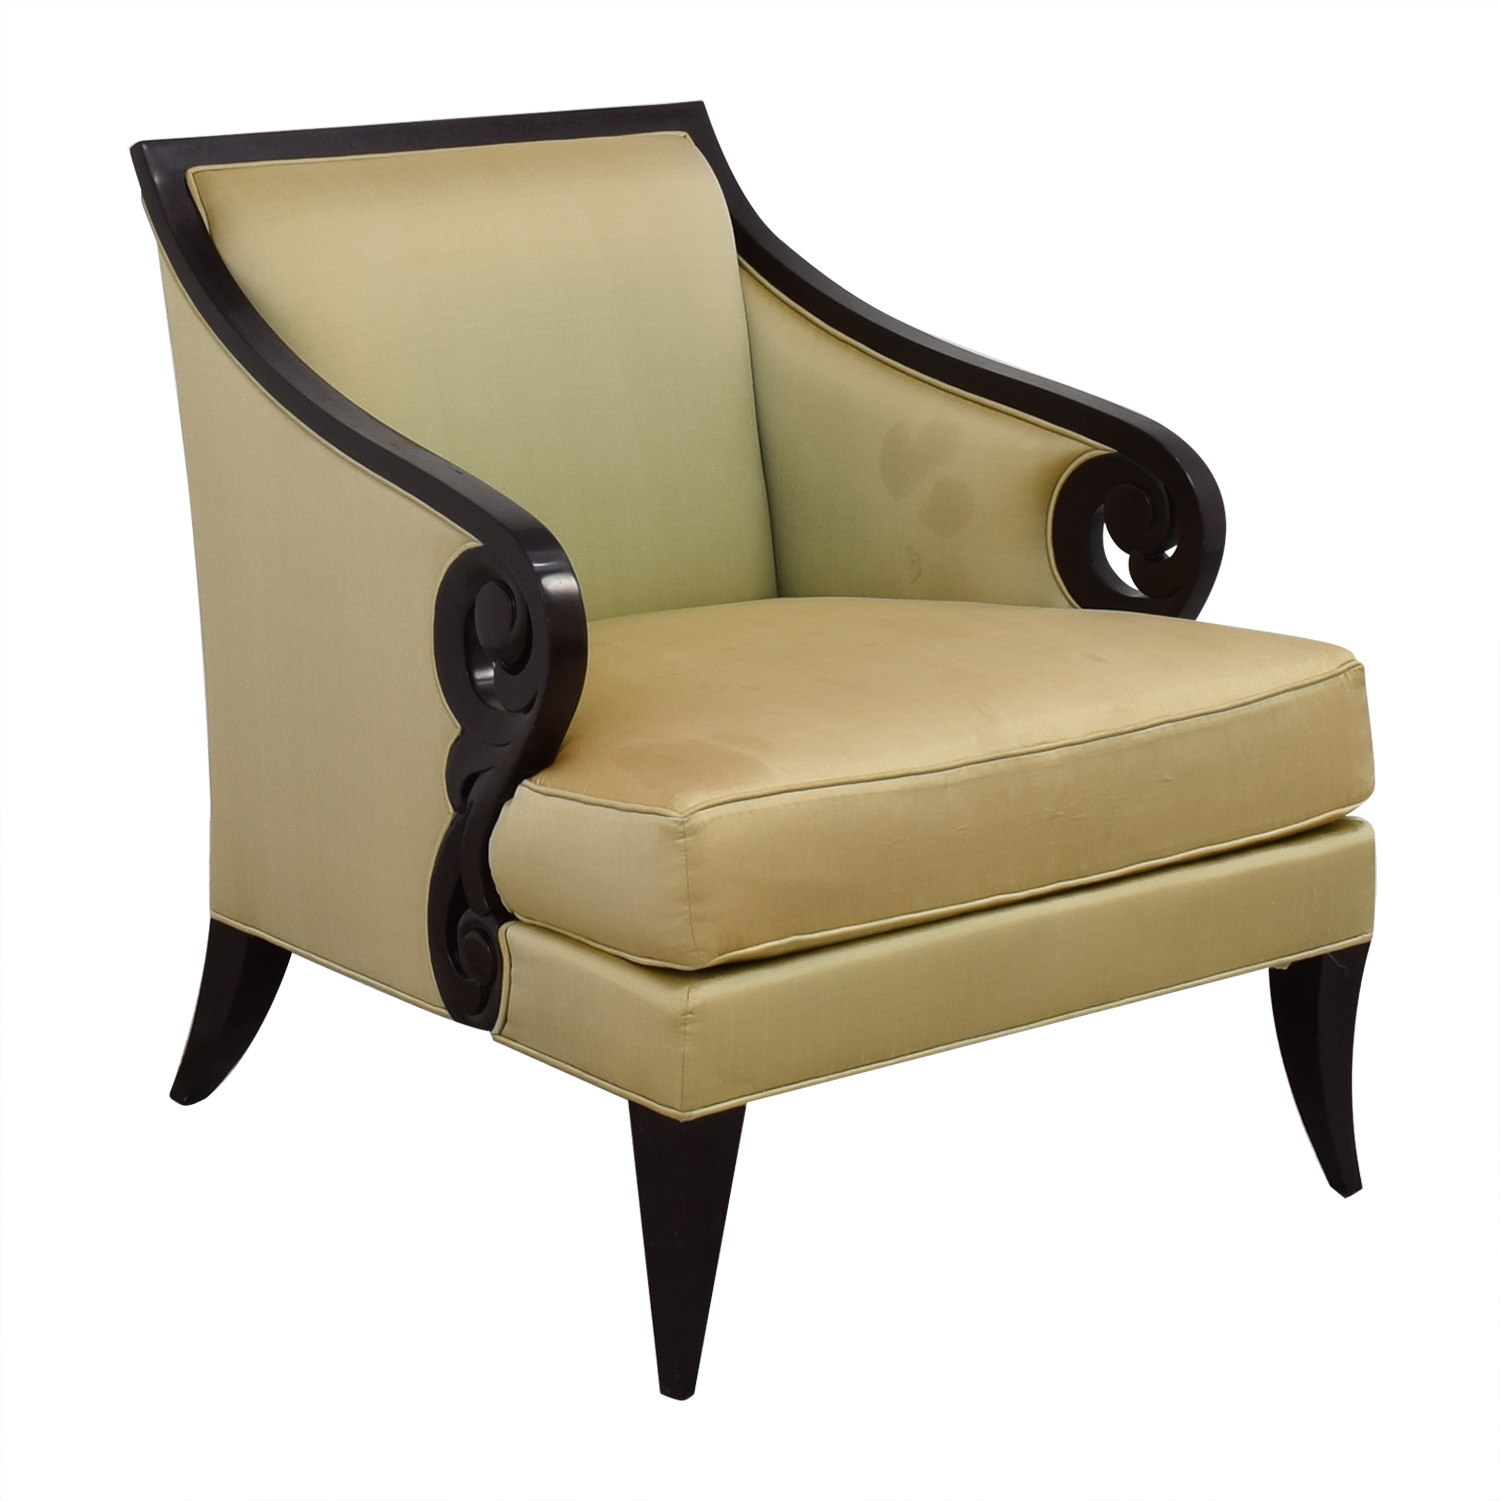 Christopher Guy Christopher Guy Ornate Arm Chair on sale